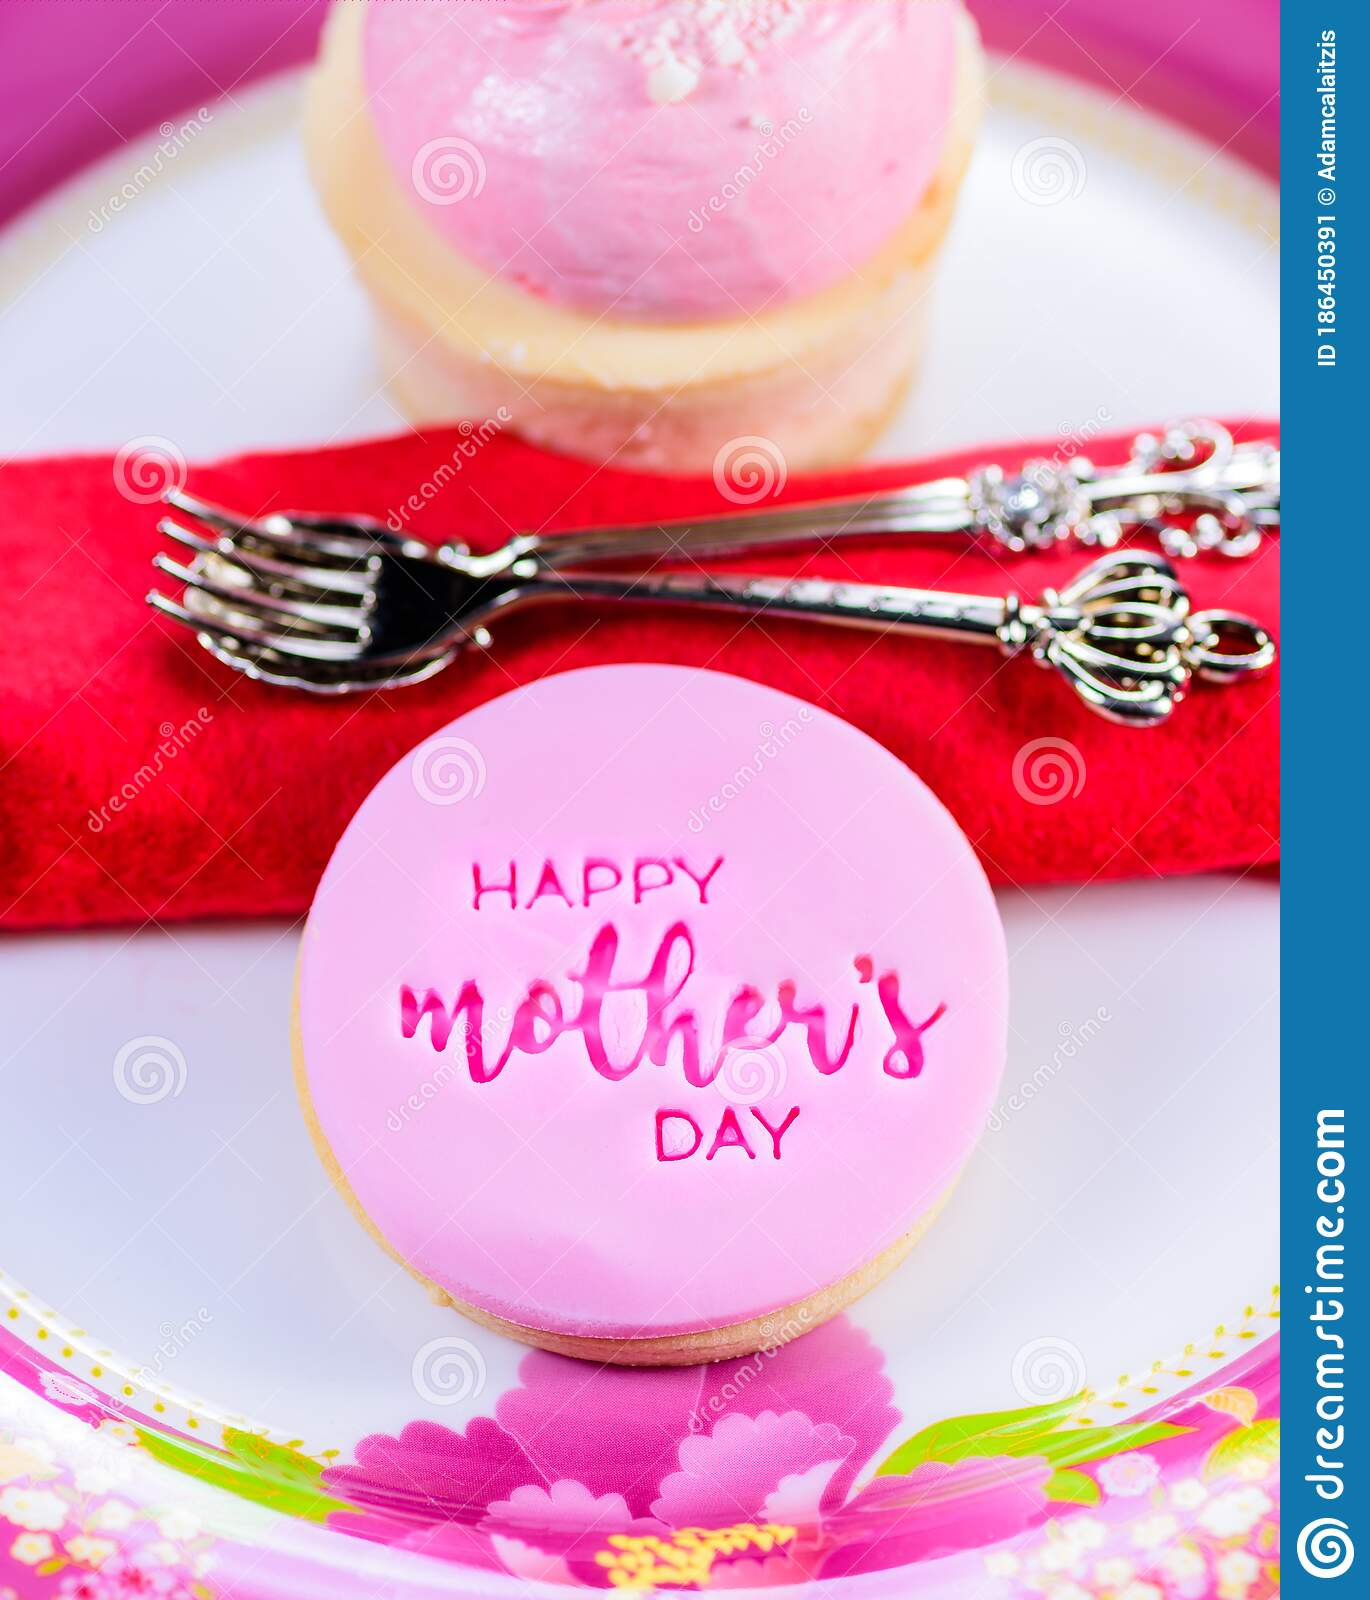 Mother S Day Cookie Stock Image Image Of Celebration 186450391